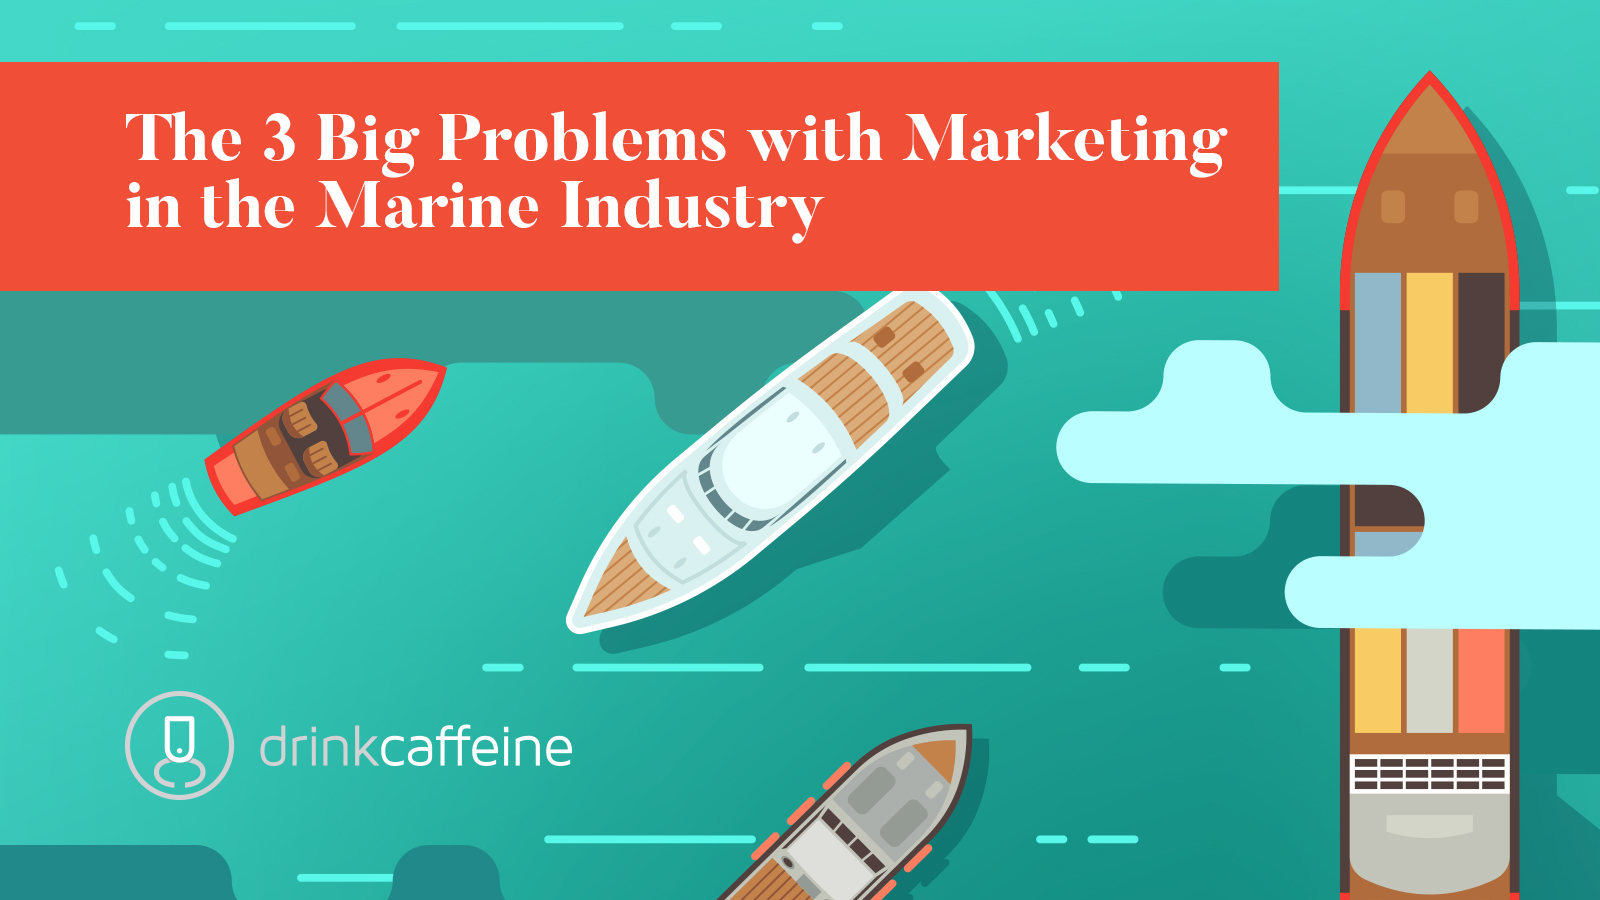 The 3 Big Problems with Marketing in the Marine Industry blog image